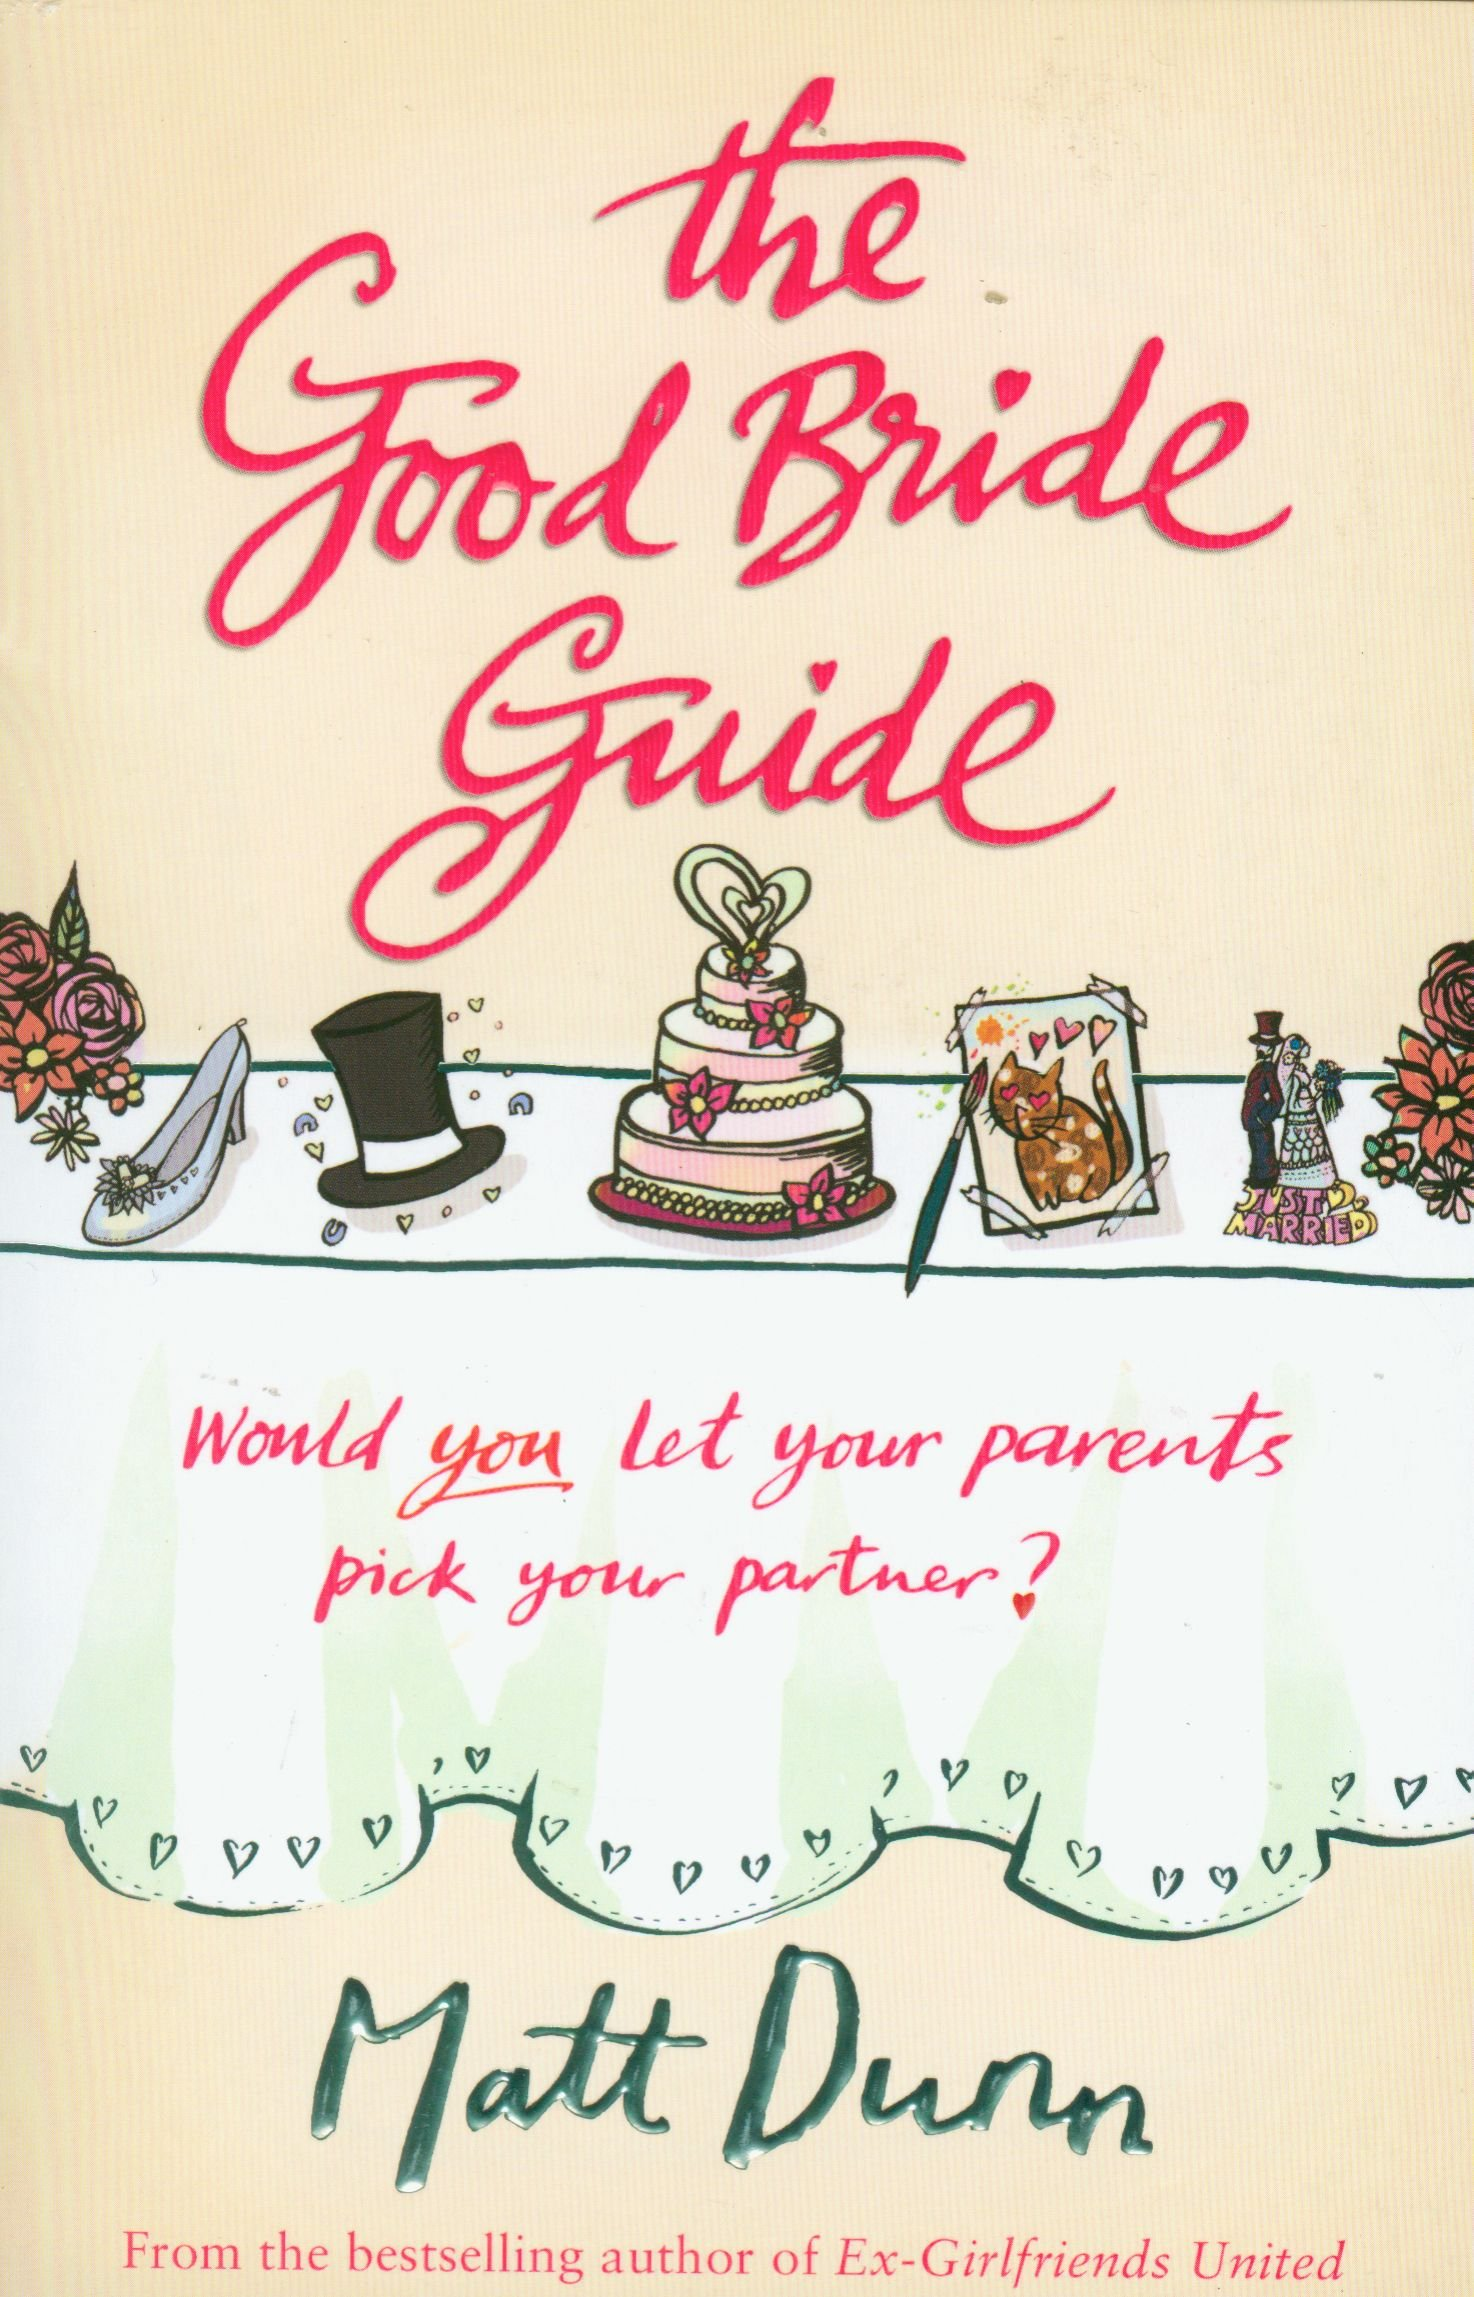 Good Bride Guide guide to good manners